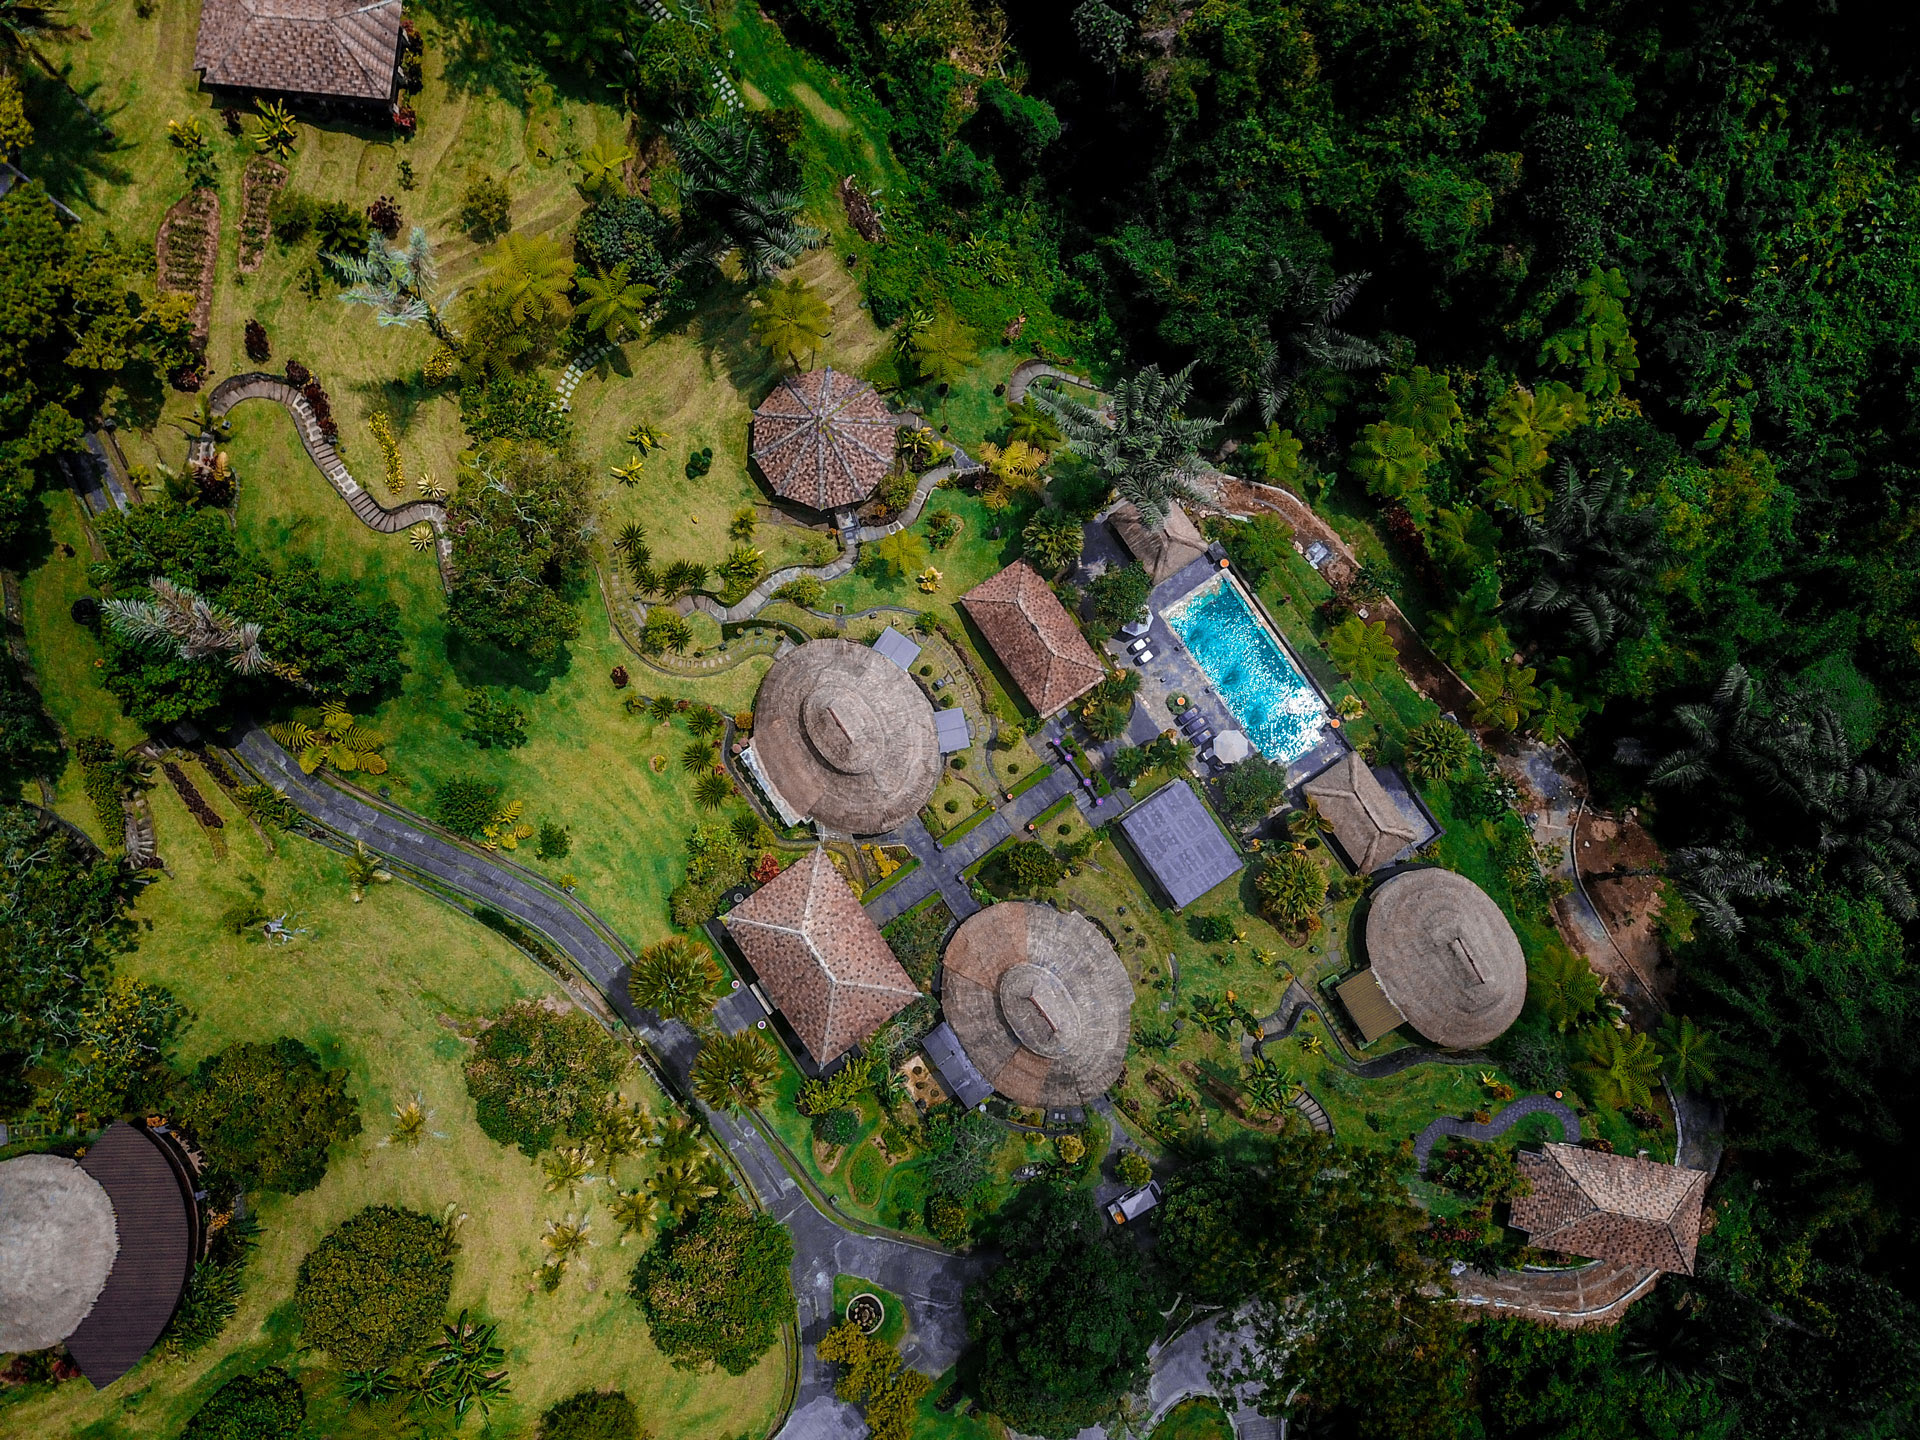 Health And Wellbeing Retreat In Tegallalang